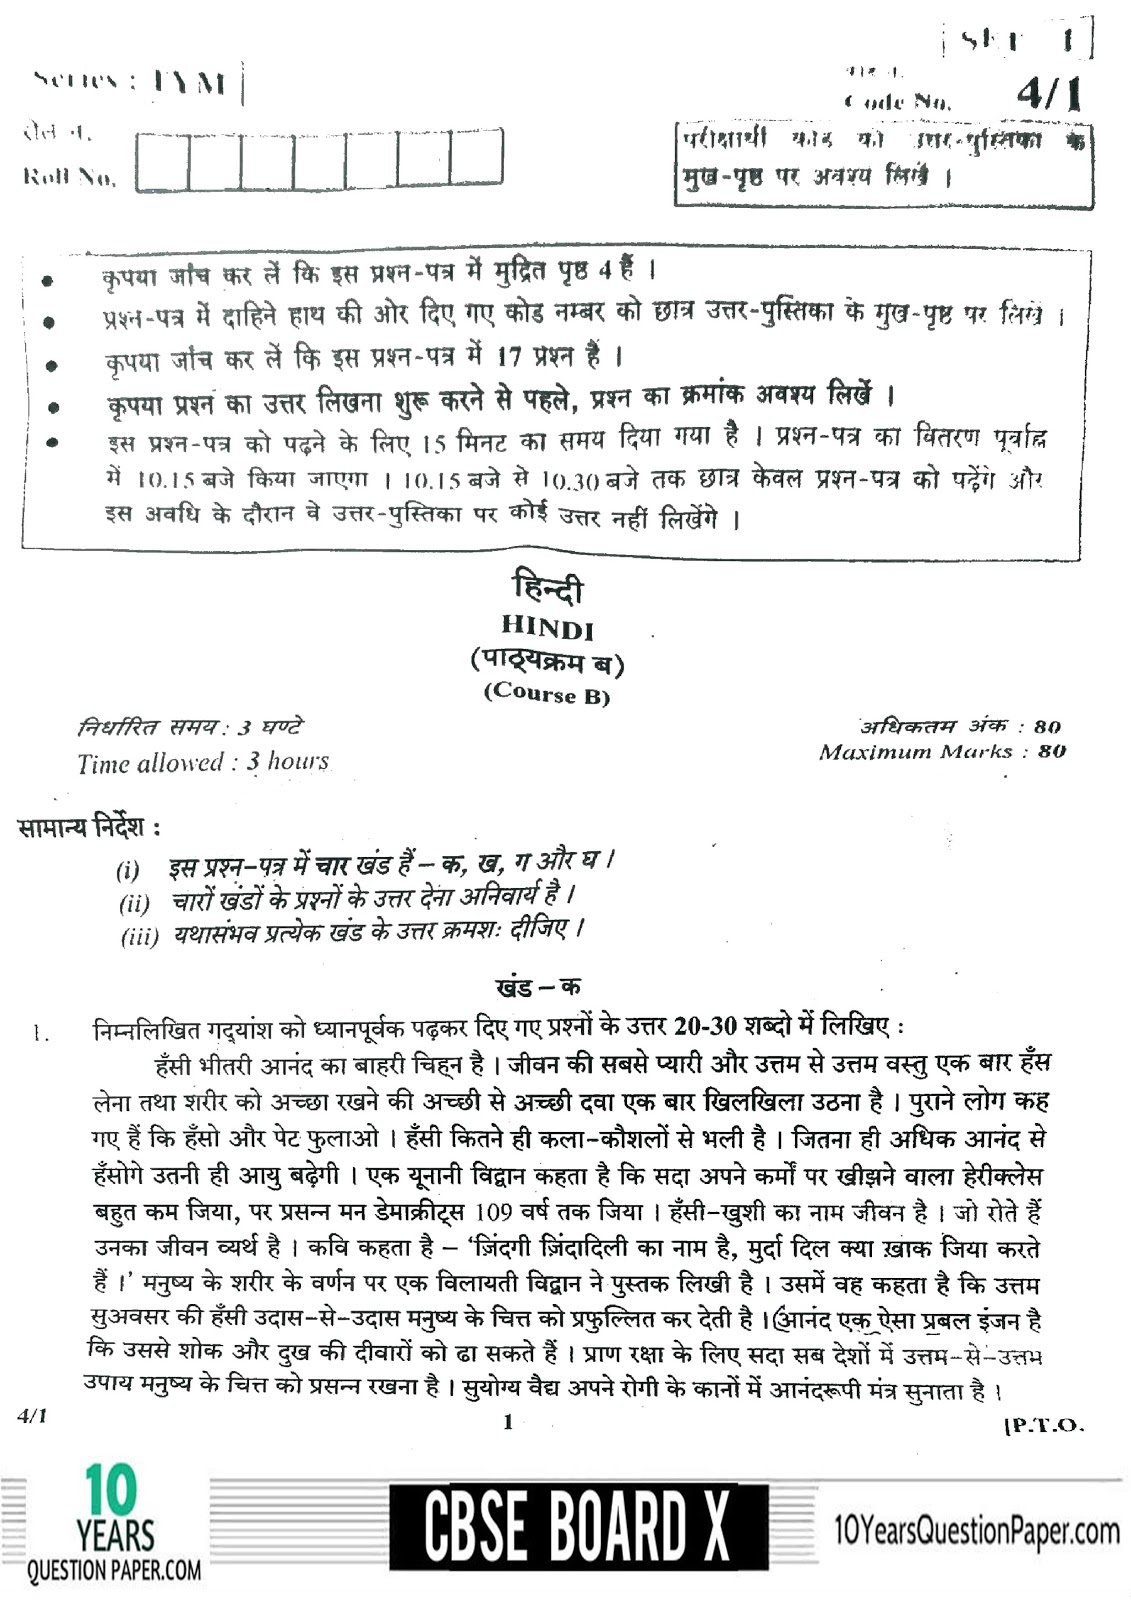 CBSE Class 10 Hindi B 2018 Question Paper